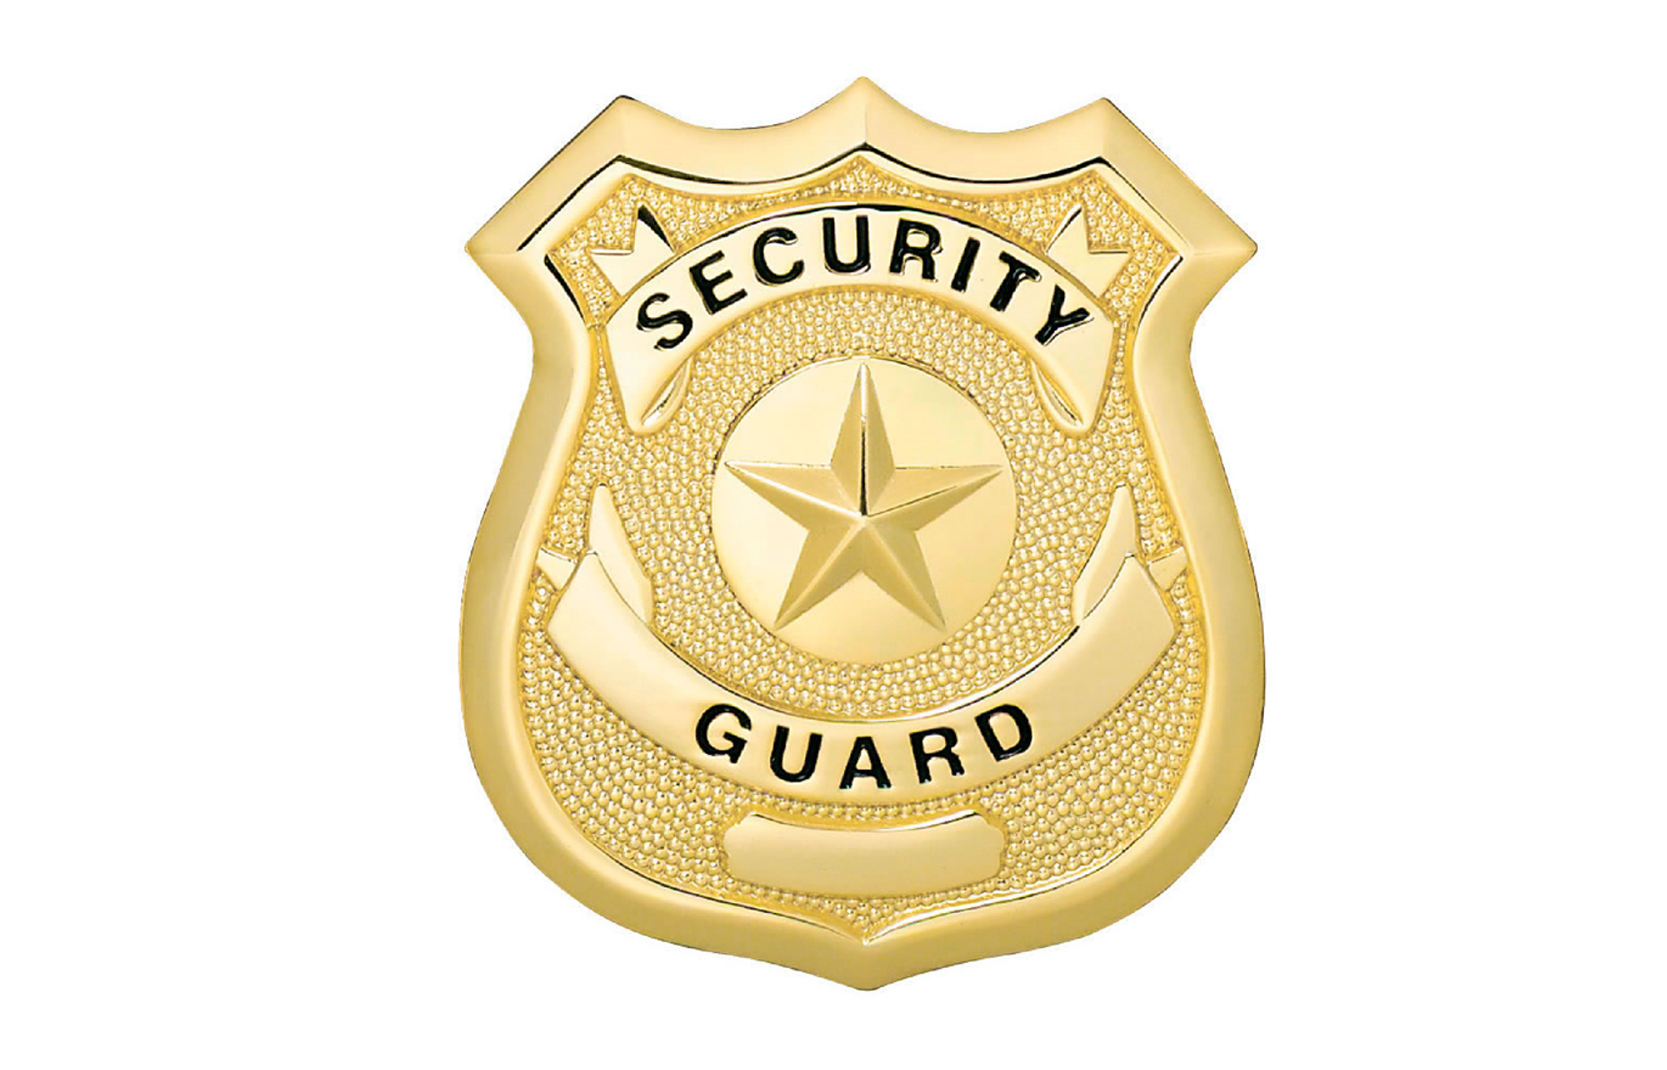 Security guard certification the city college of new york security guard certification xflitez Gallery